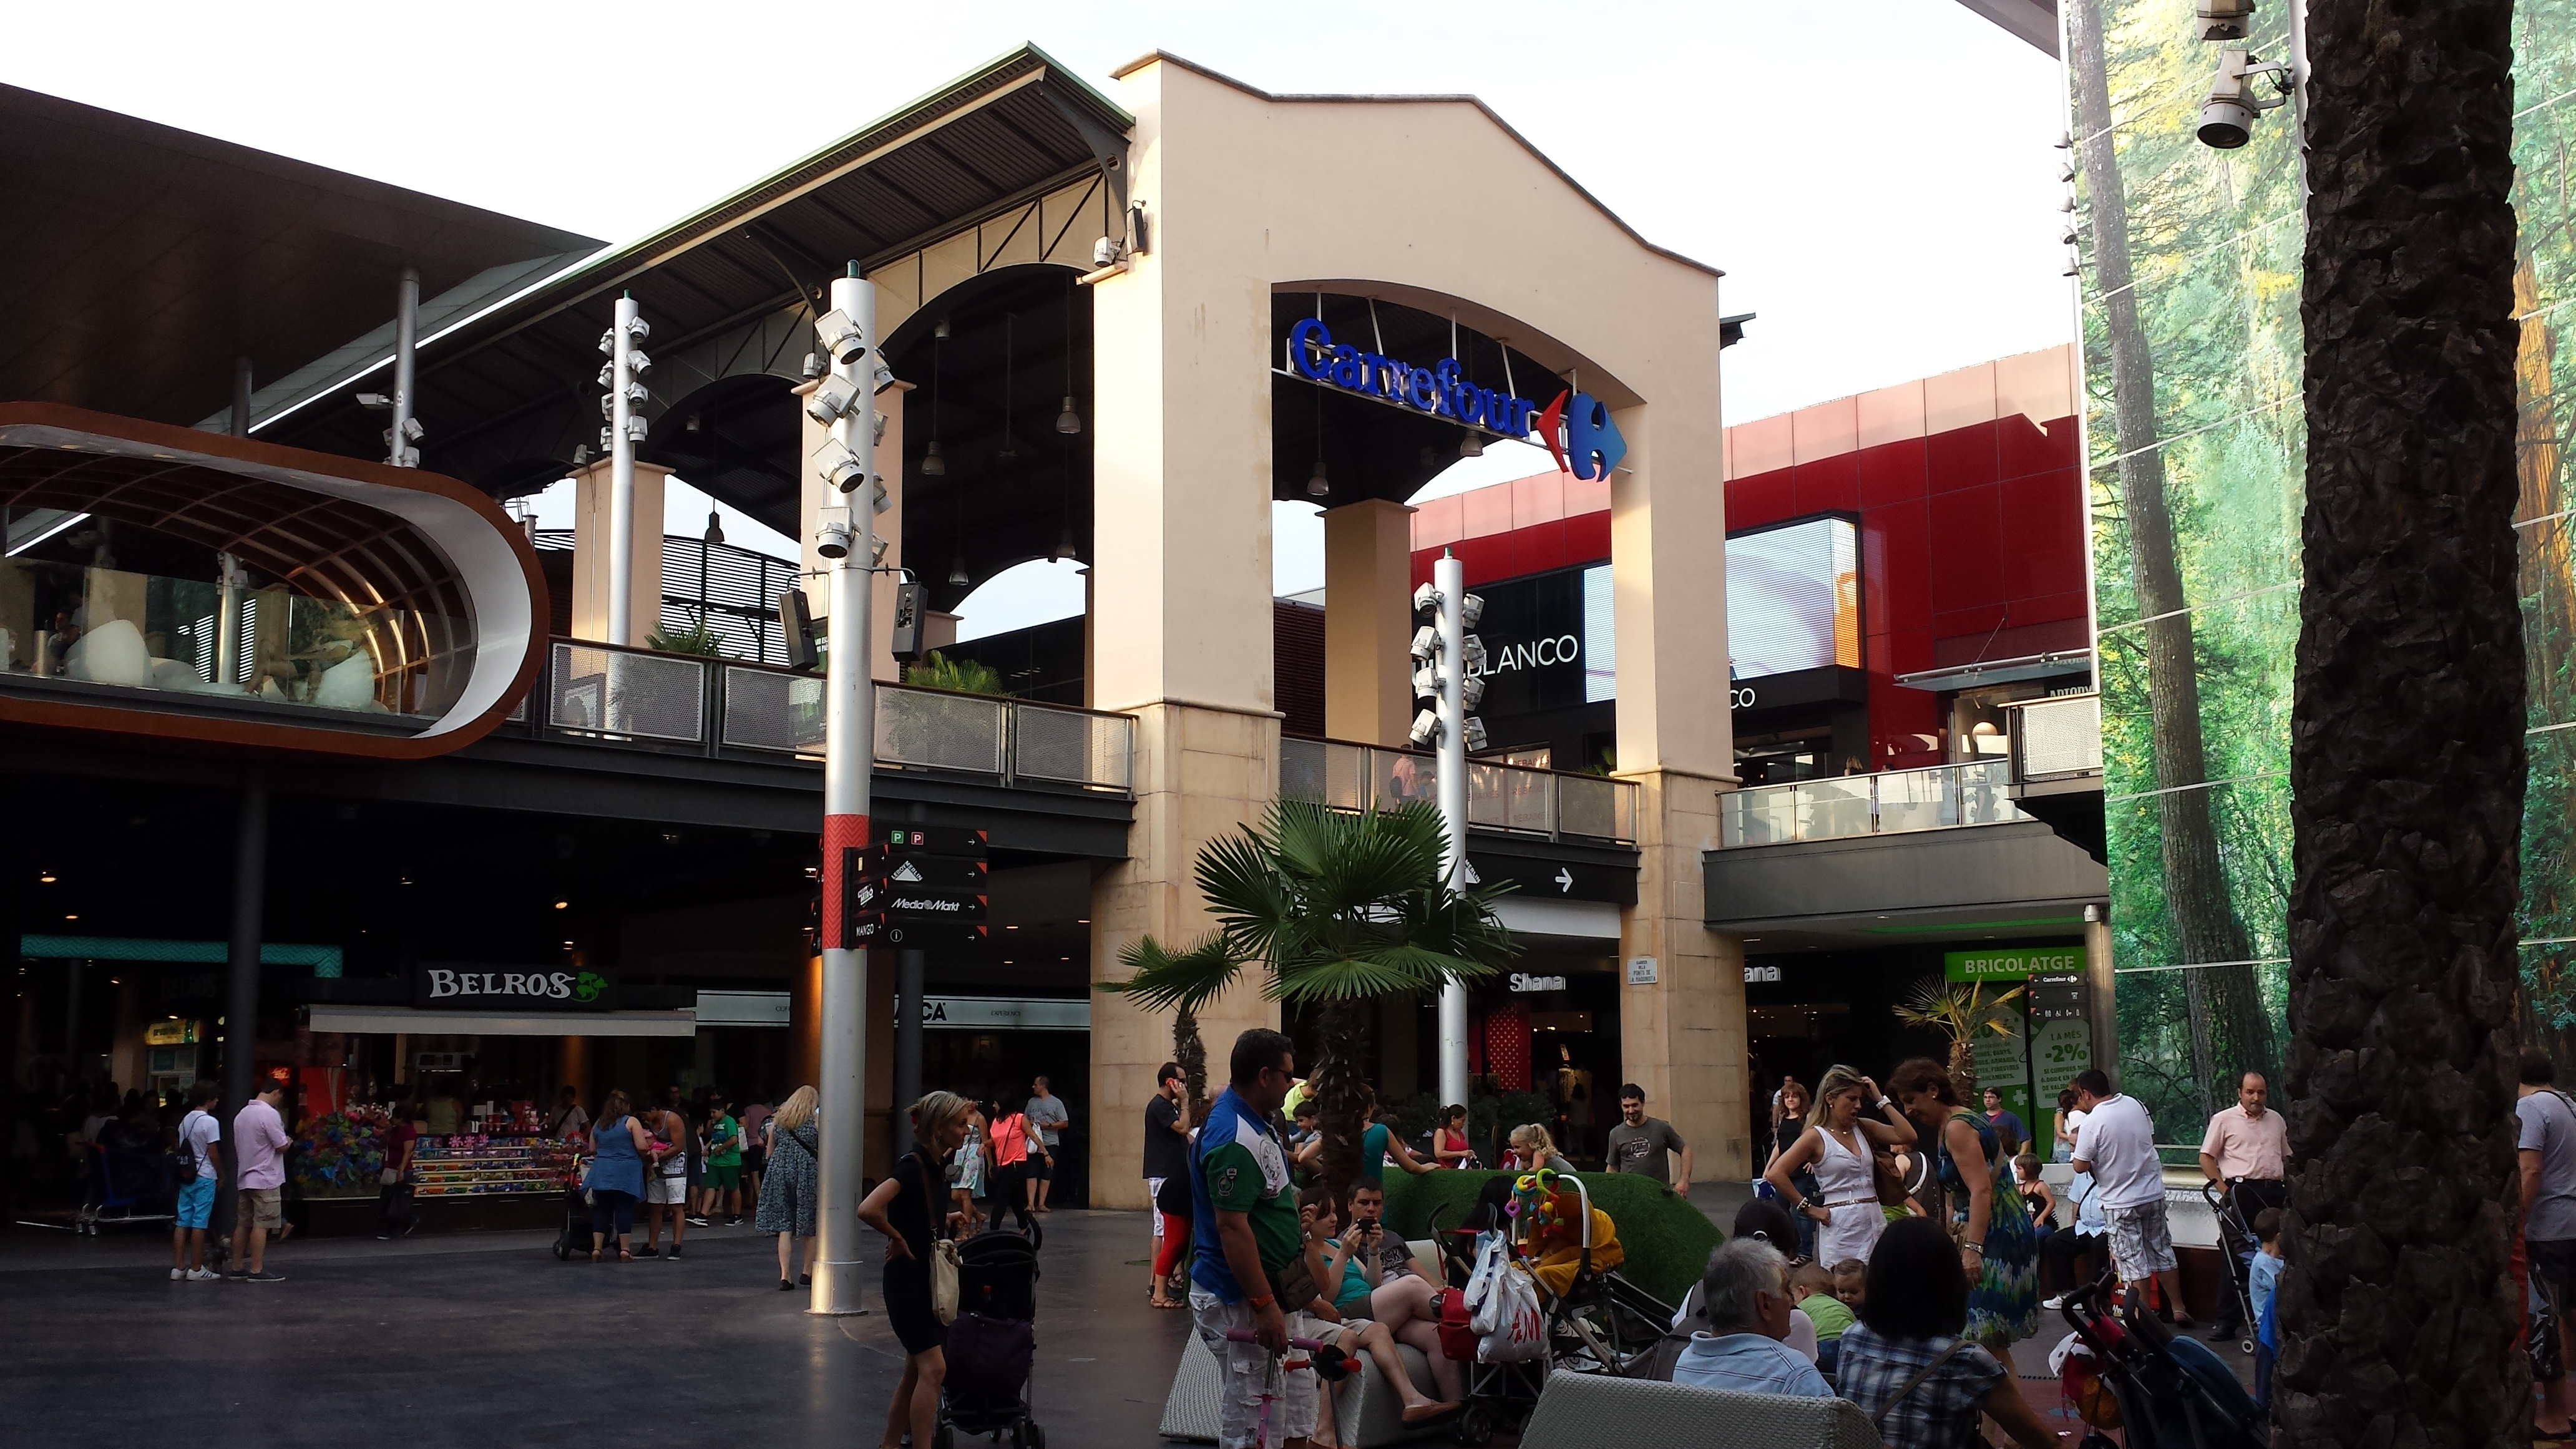 Shopping center La Maquinista